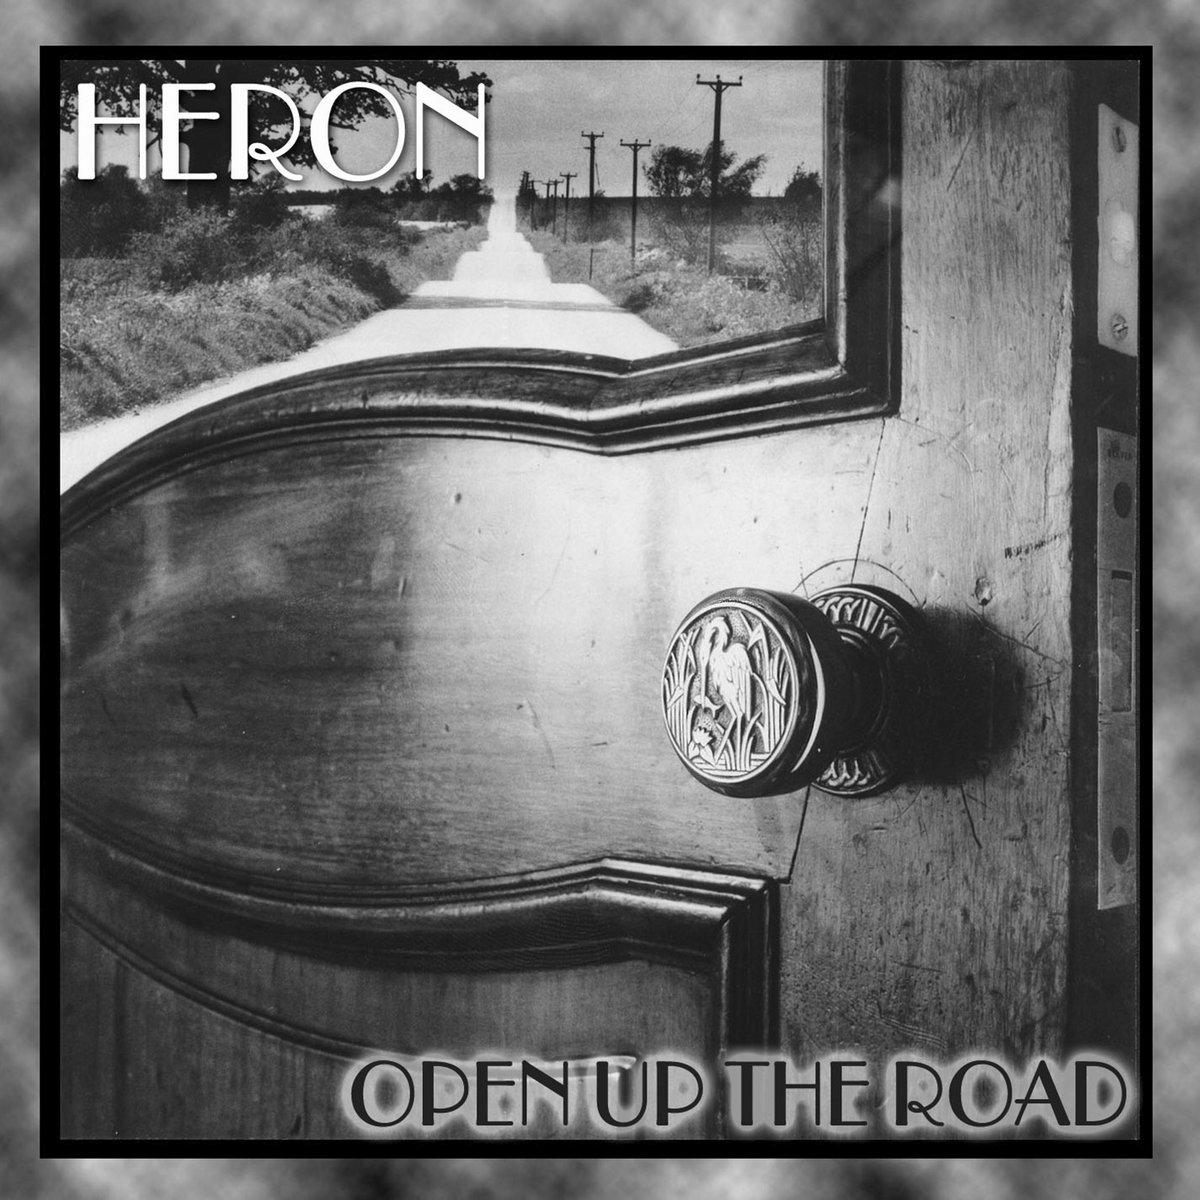 「HERON (UK) / OPEN UP THE ROAD」の画像検索結果